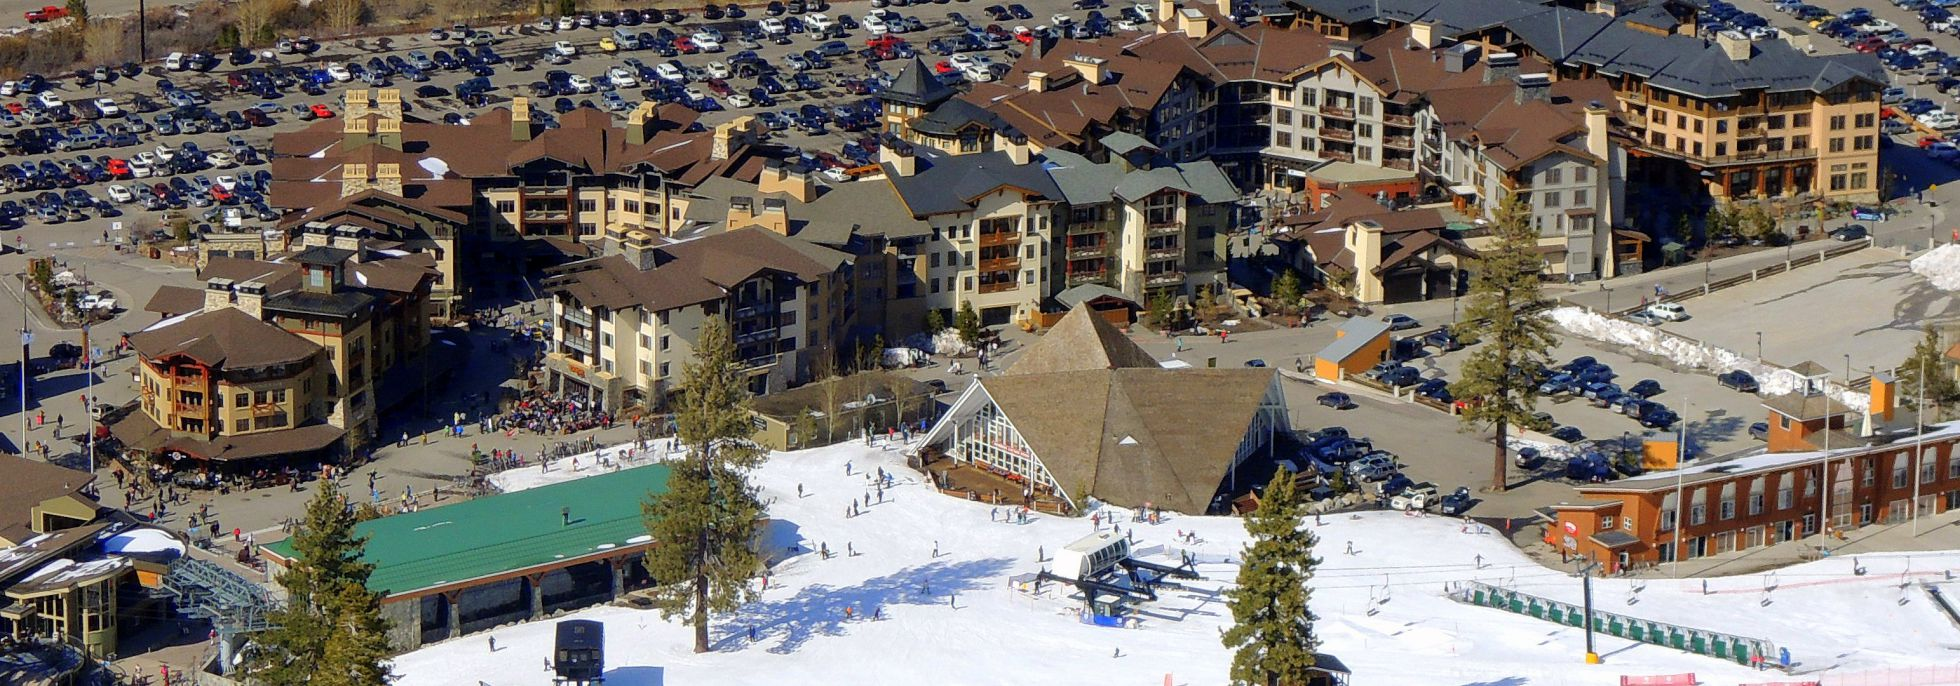 http://sugarpineeng.com/wp-content/uploads/2016/05/squaw-village-aerial-1960.jpg